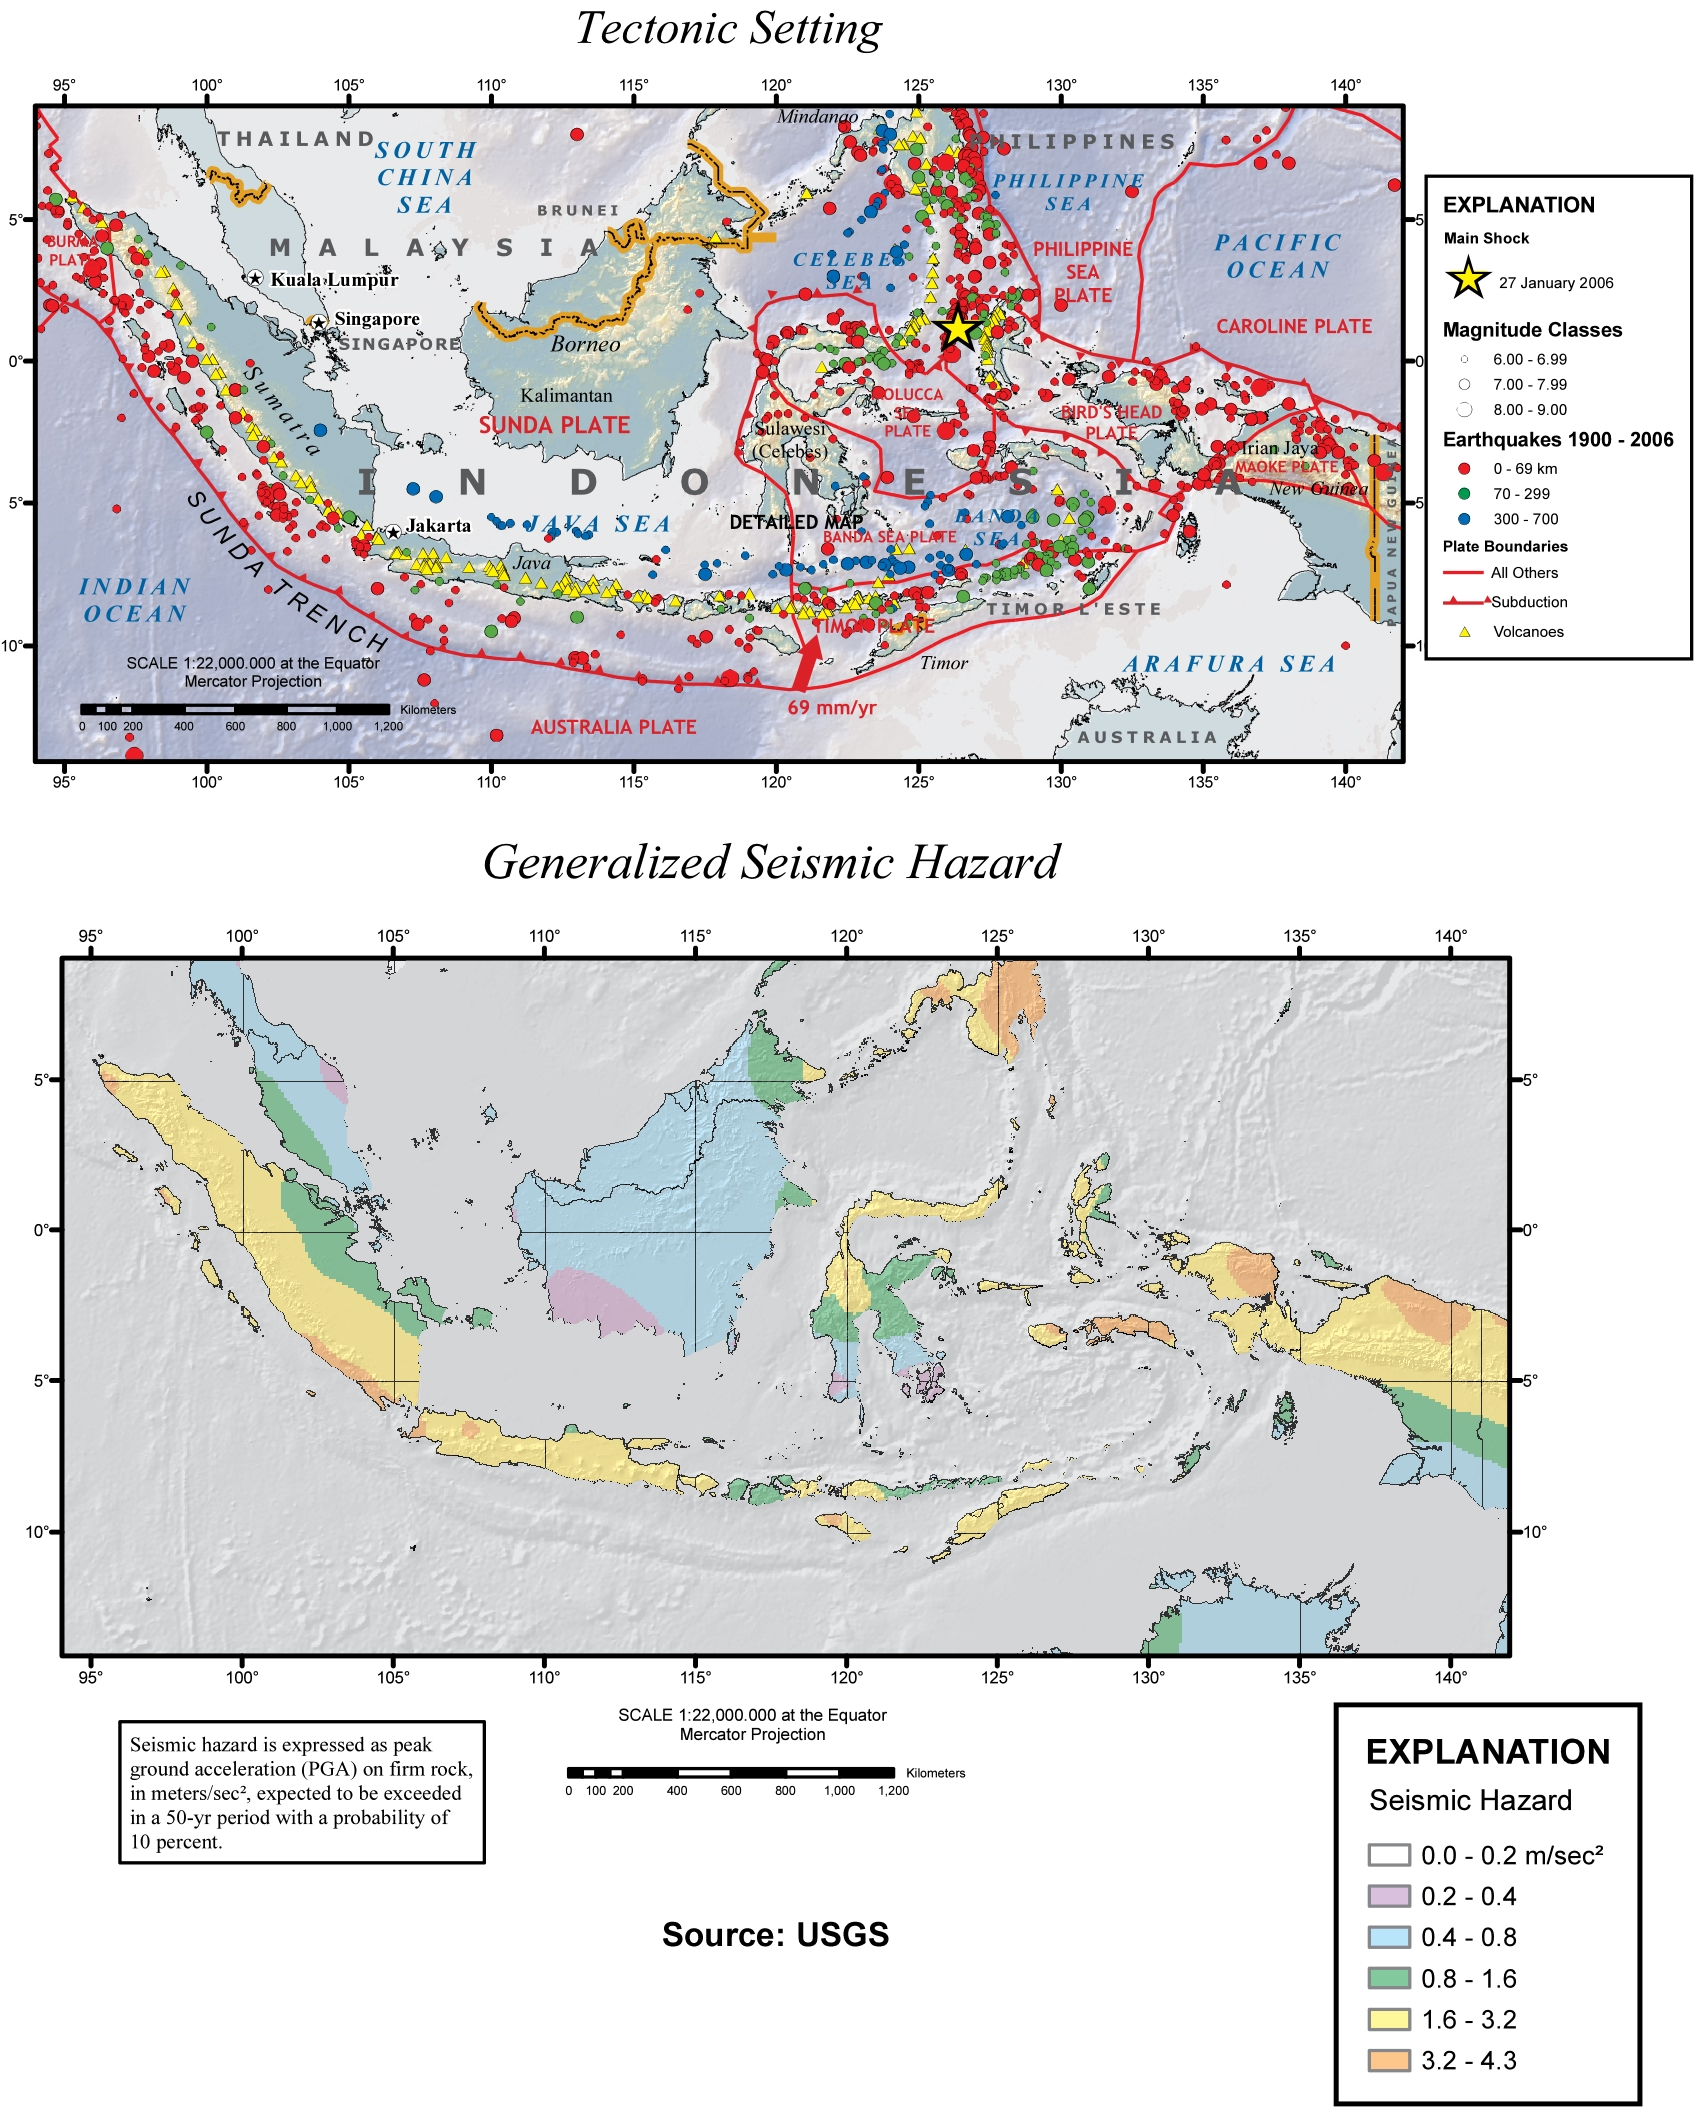 Earthquake geology of southeast asia scientific malaysian figure 1 the tectonic setting upper panel and generalized seismic hazard lower panel of malaysia and its surrounding areas gumiabroncs Choice Image